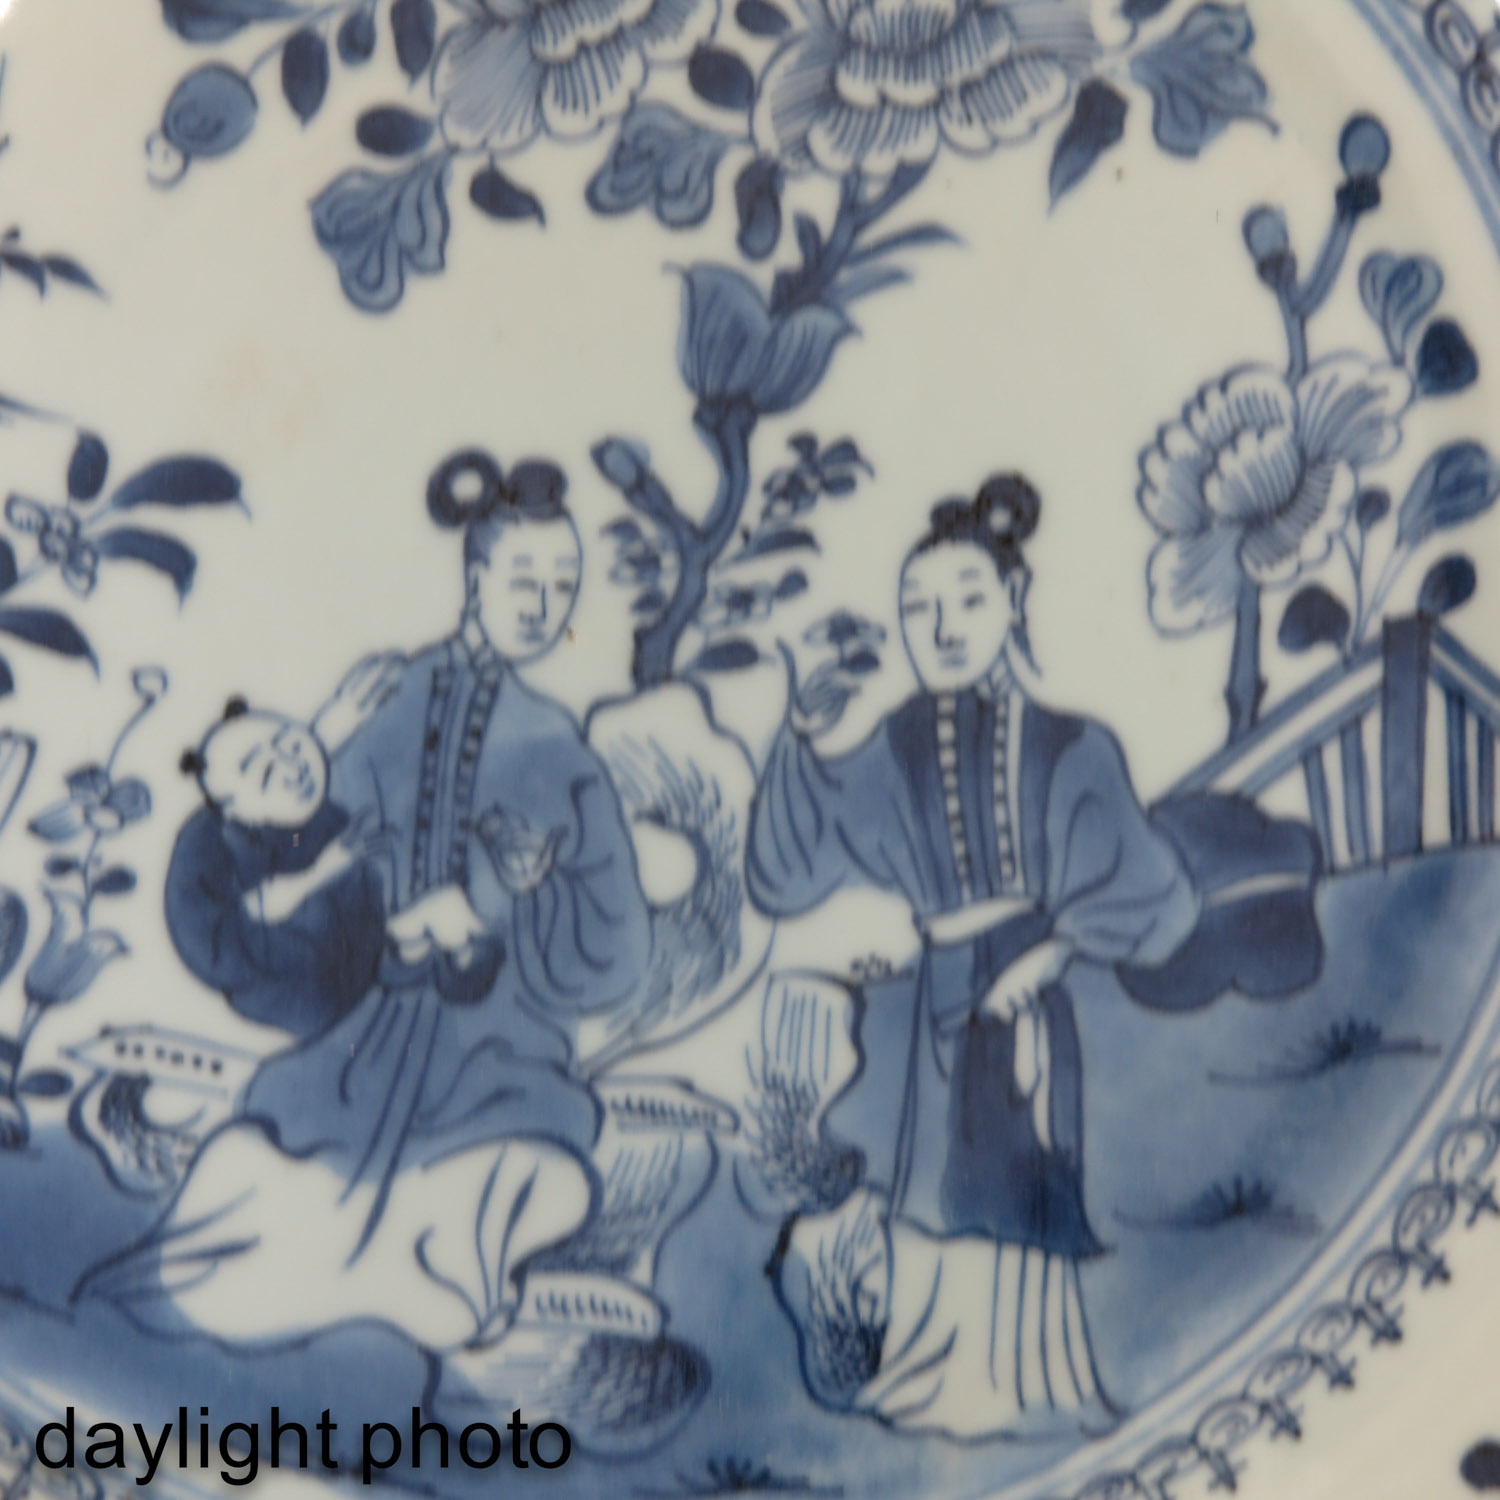 A Blue and White Plate - Image 5 of 5